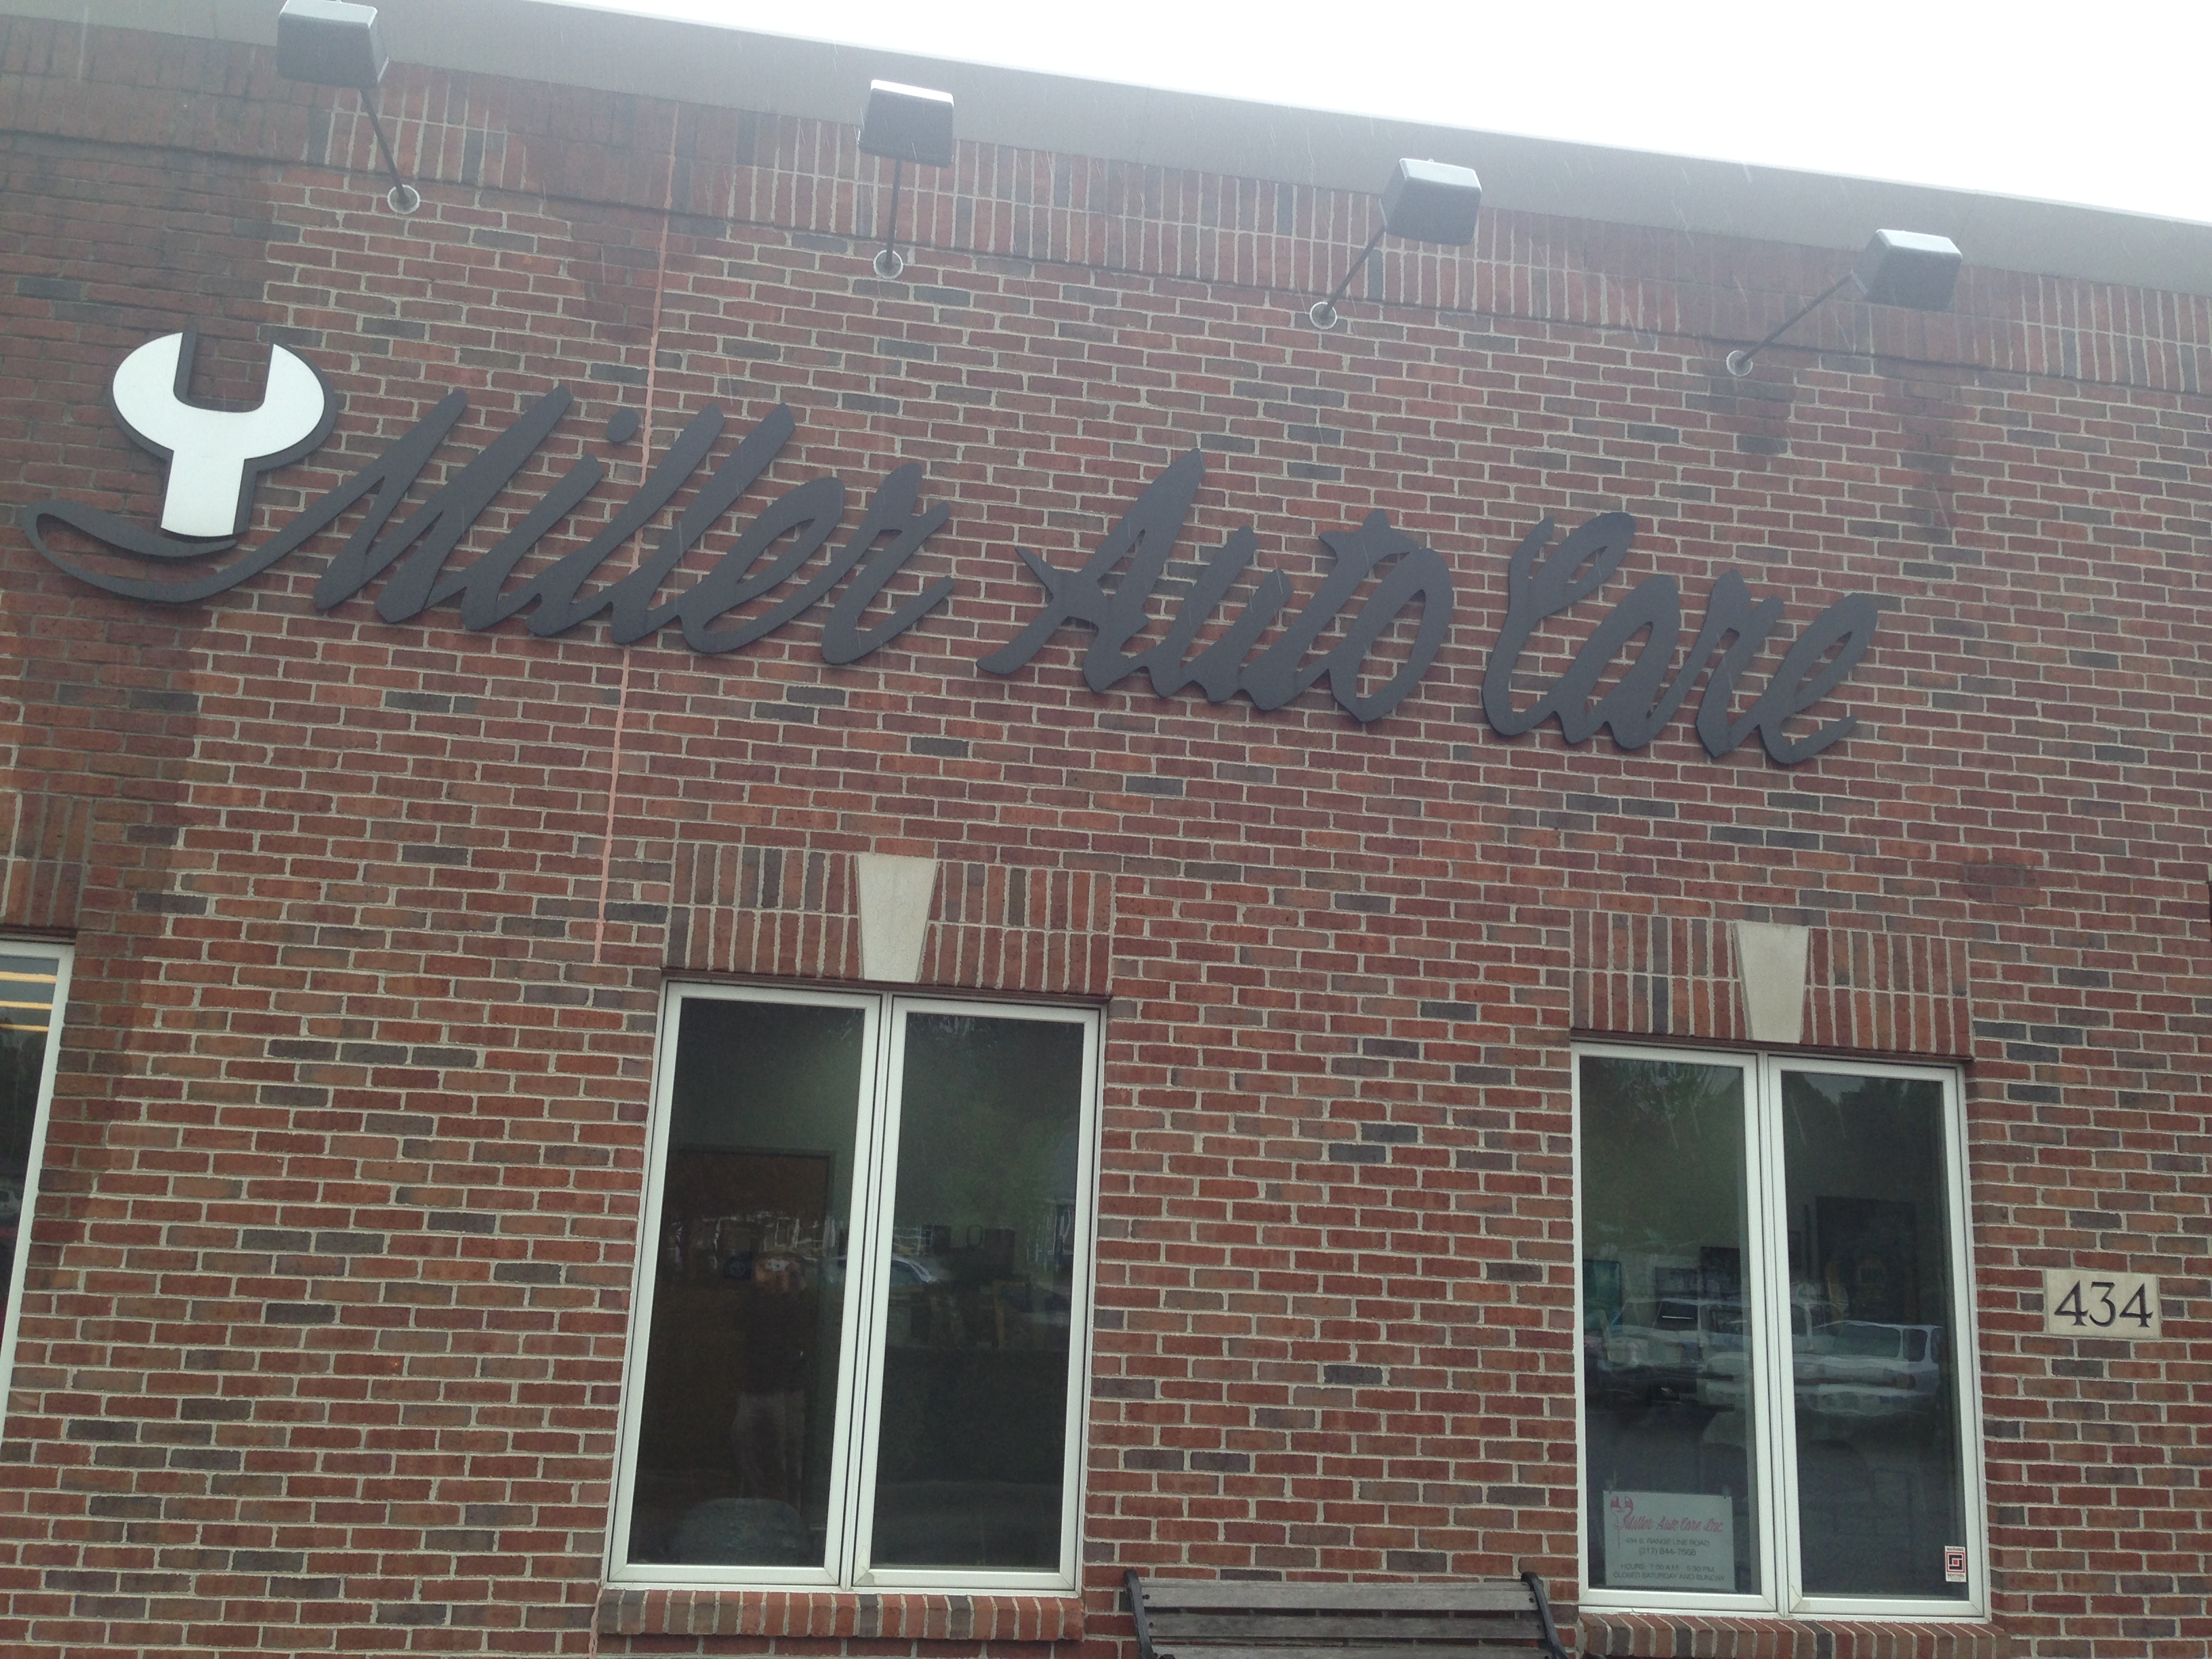 Miller Auto Care is one business that will have to move, but not close, in the near future. (Photo by Adam Aasen)